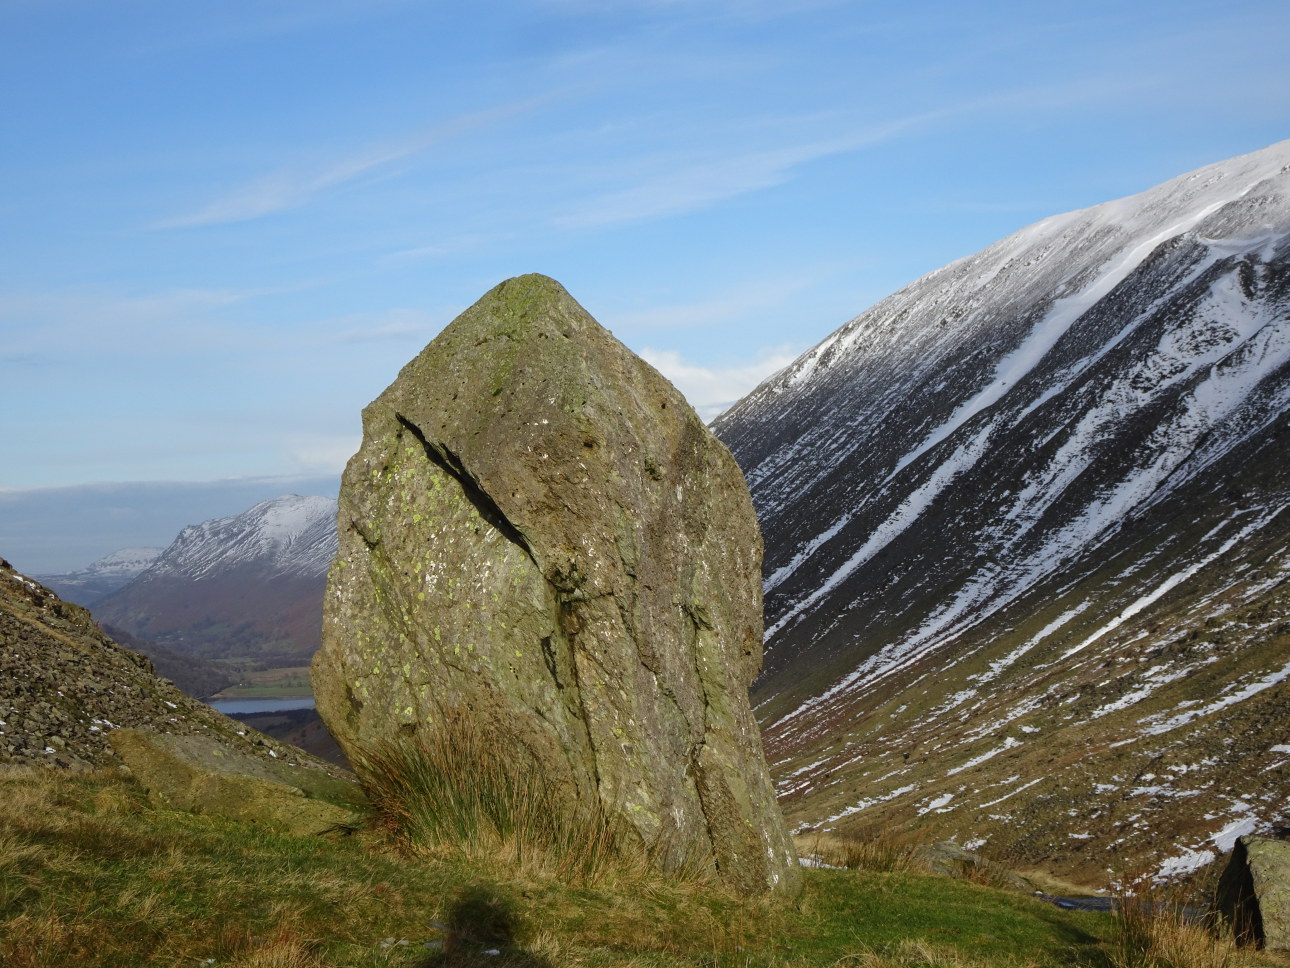 The kirk stone which gives Kirkstone Pass its name. Taken on 5/12/20 at 1:29pm.